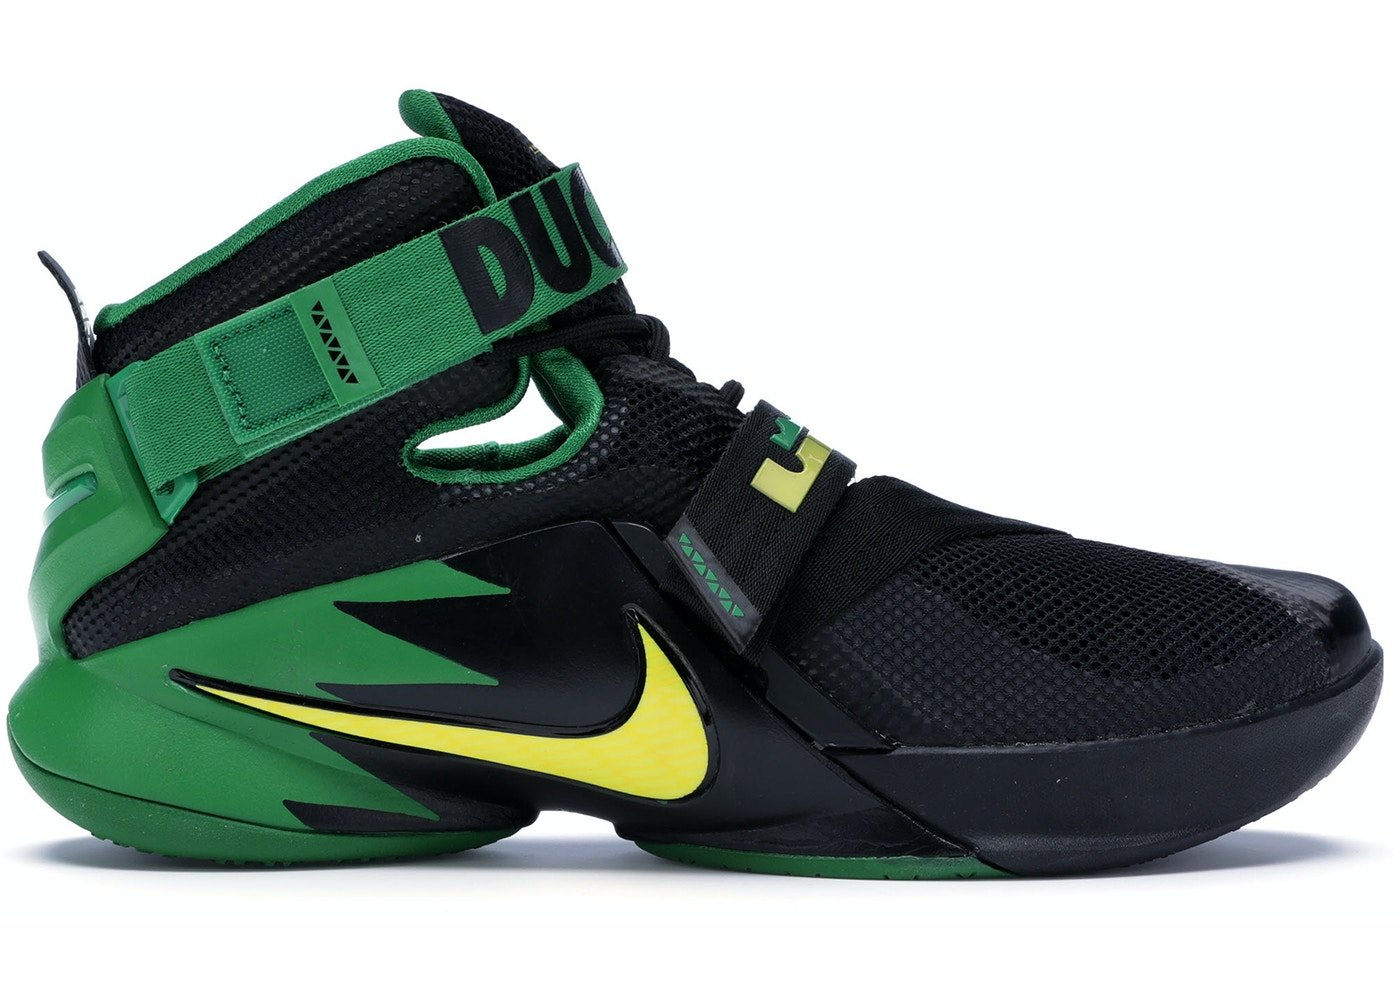 9003514bb1c1 LeBron Zoom Soldier 9 Oregon - 749490-073